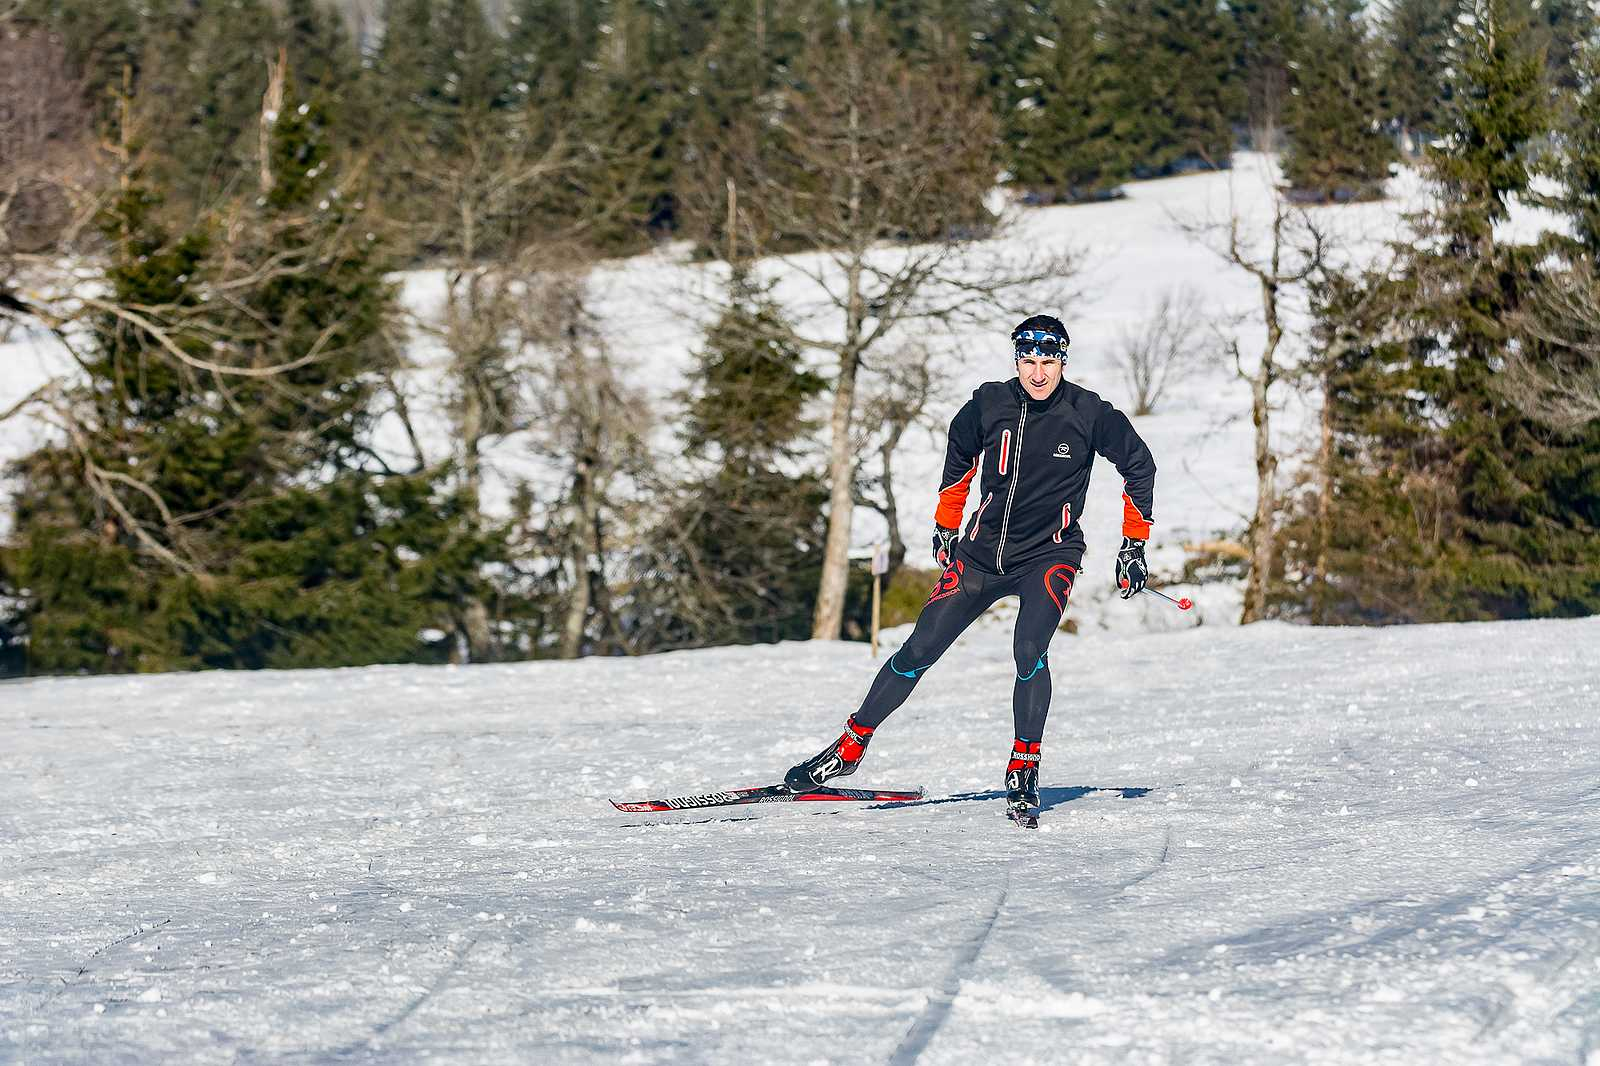 Cross-country skiing at the Champ du Feu